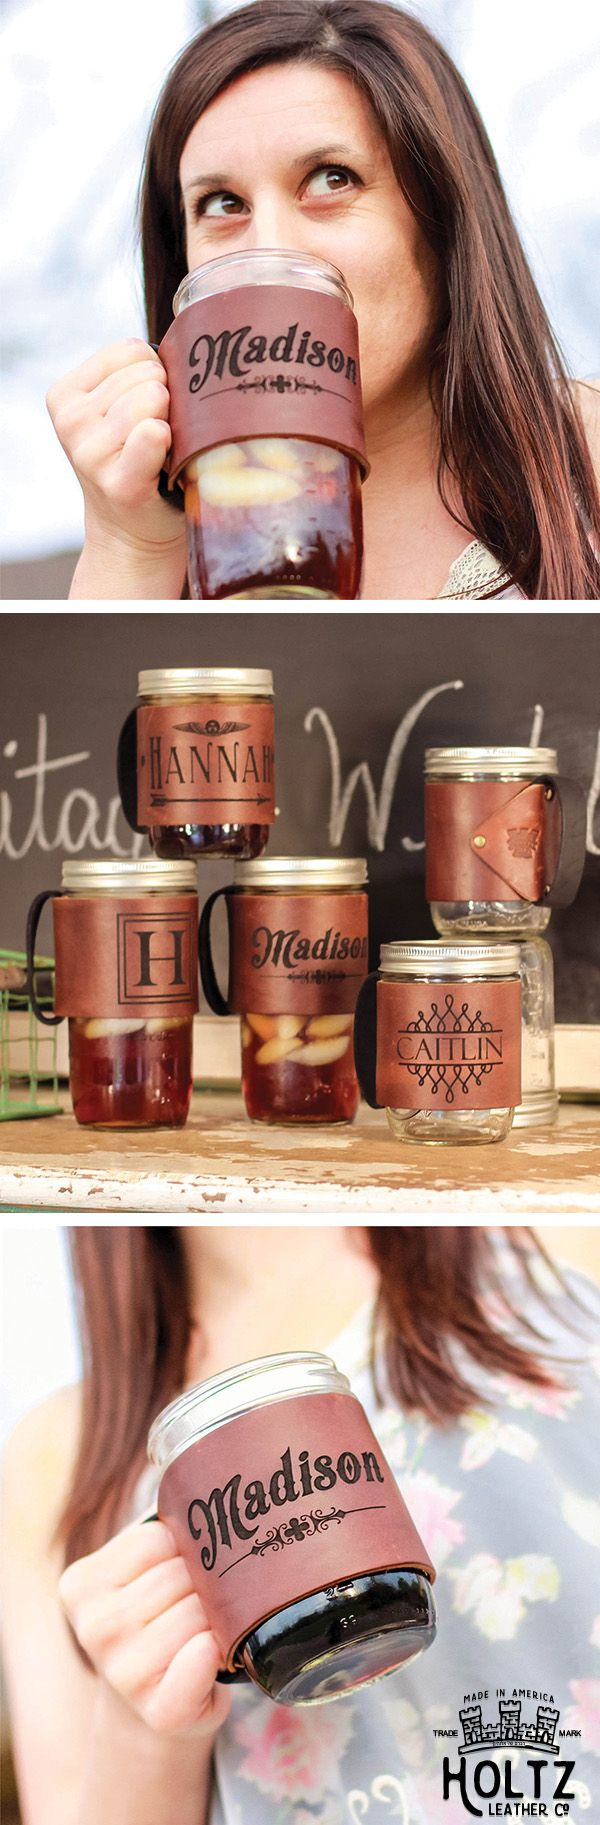 Drinking out of a Mason Jar just got even cuter!  Our Mason Jar wraps feature your bridesmaid's name or initials.  The wrap fits snug around the jar and has a soft, comfortable handle.